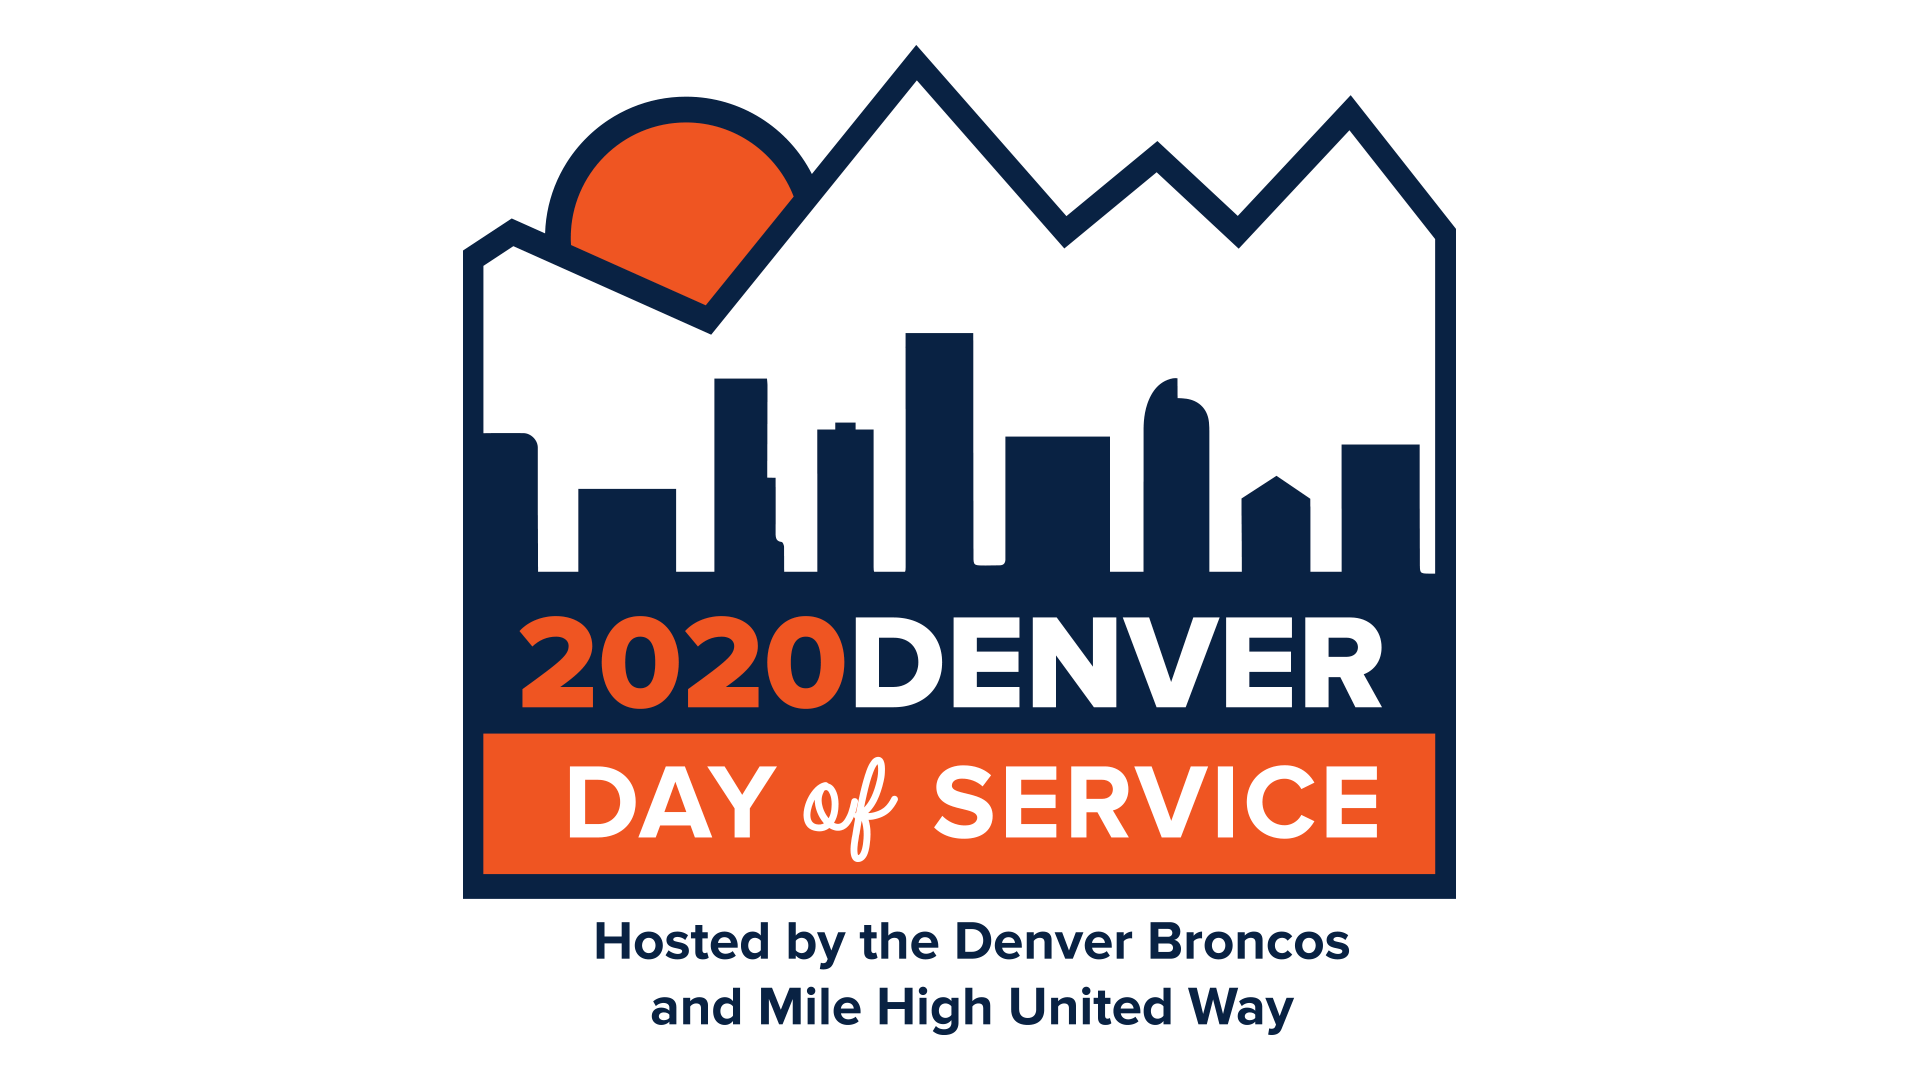 Denver Day of Service Logo